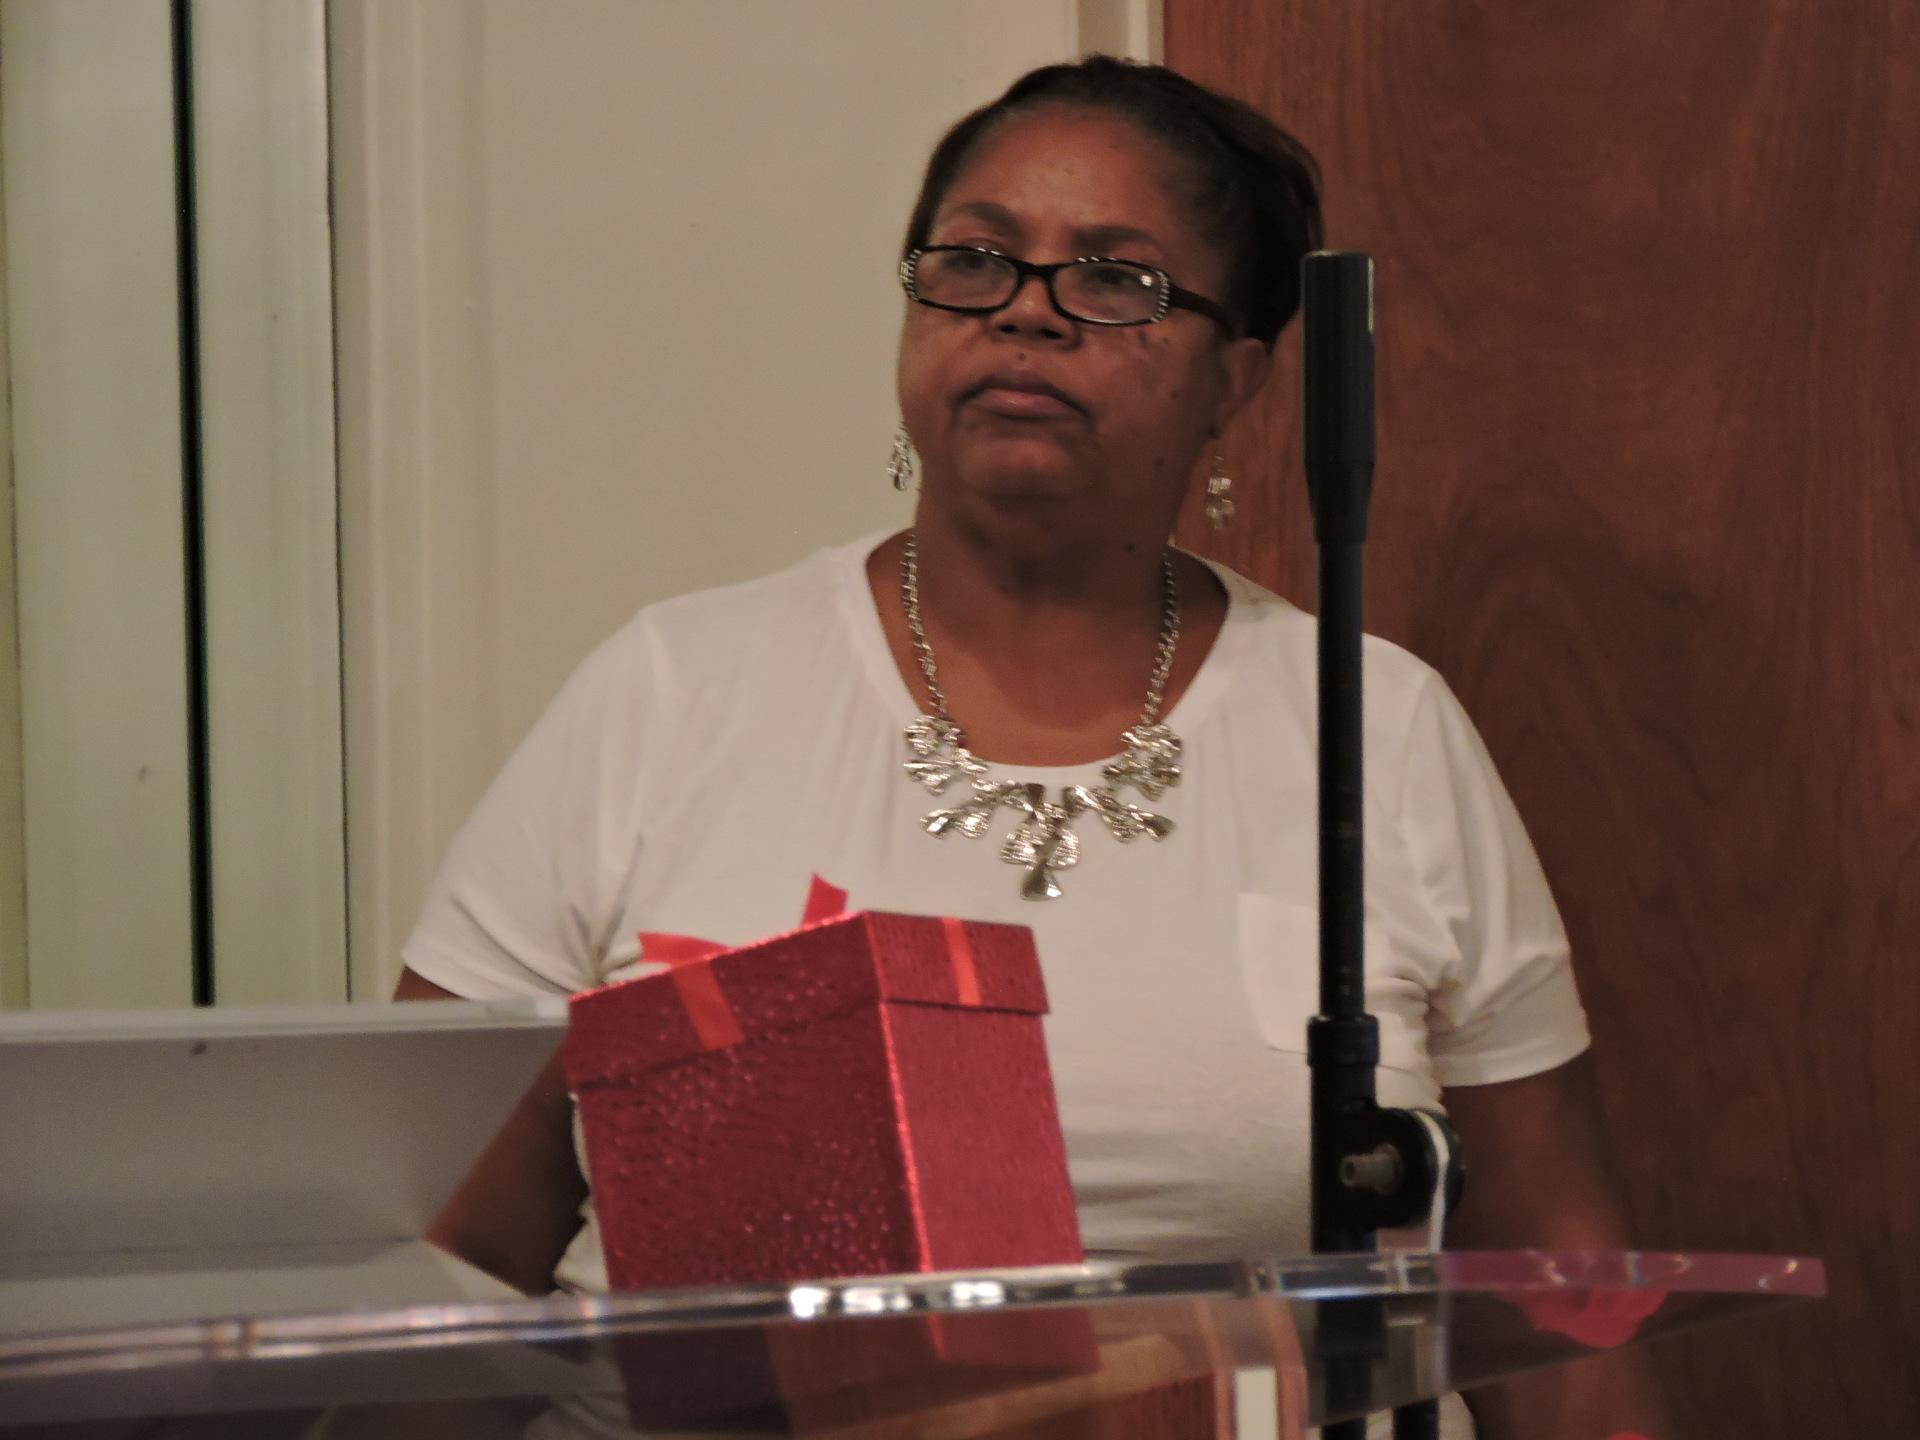 Elder Shirlene Peten Tuned In to The Word